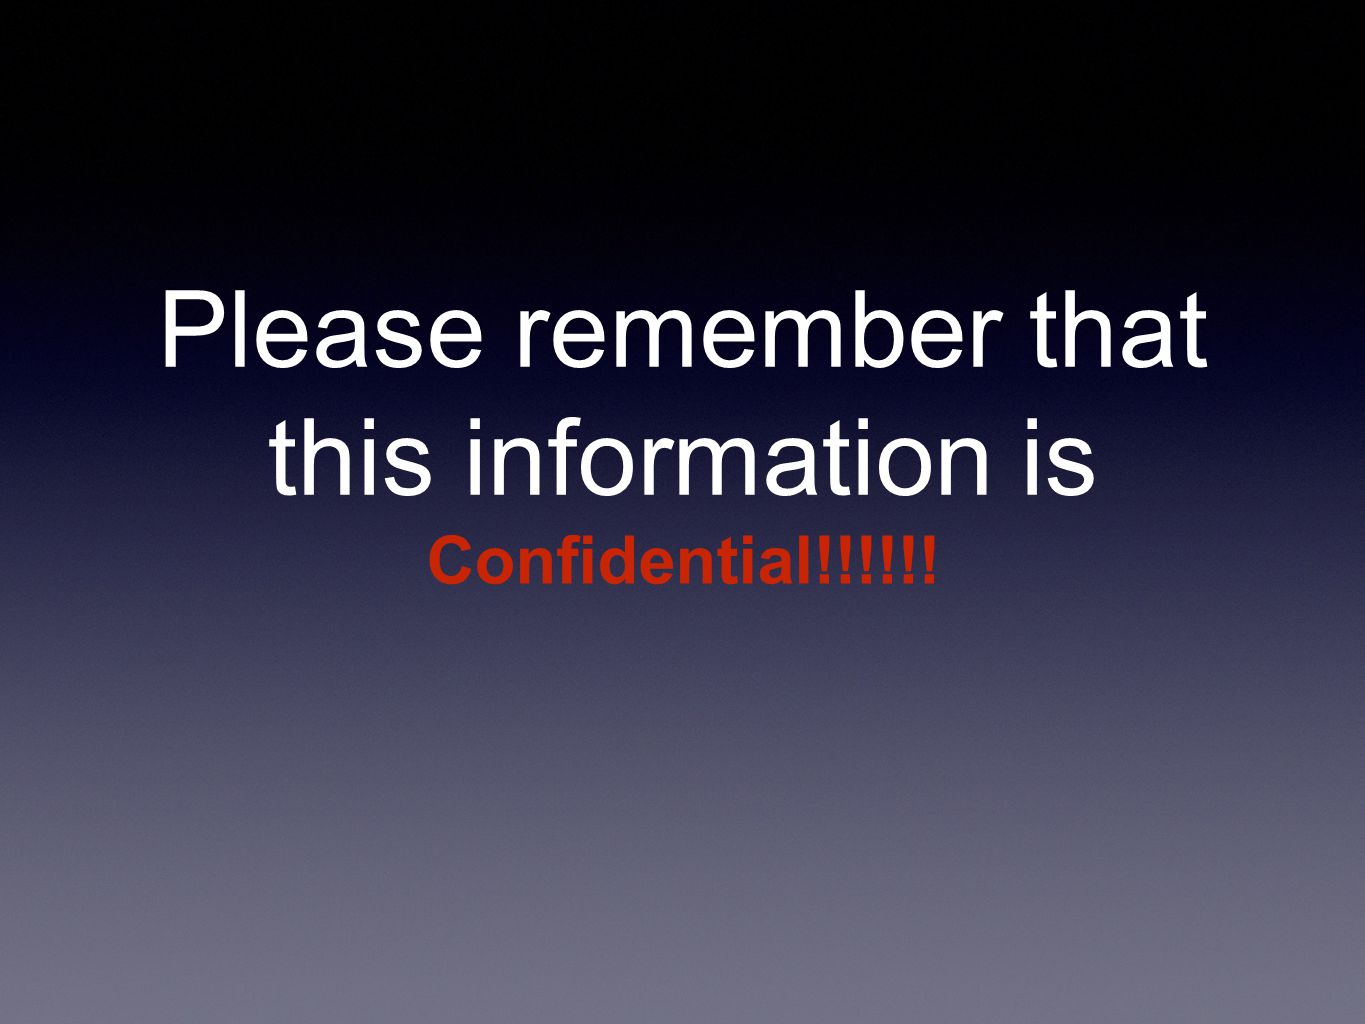 Please remember that this information is